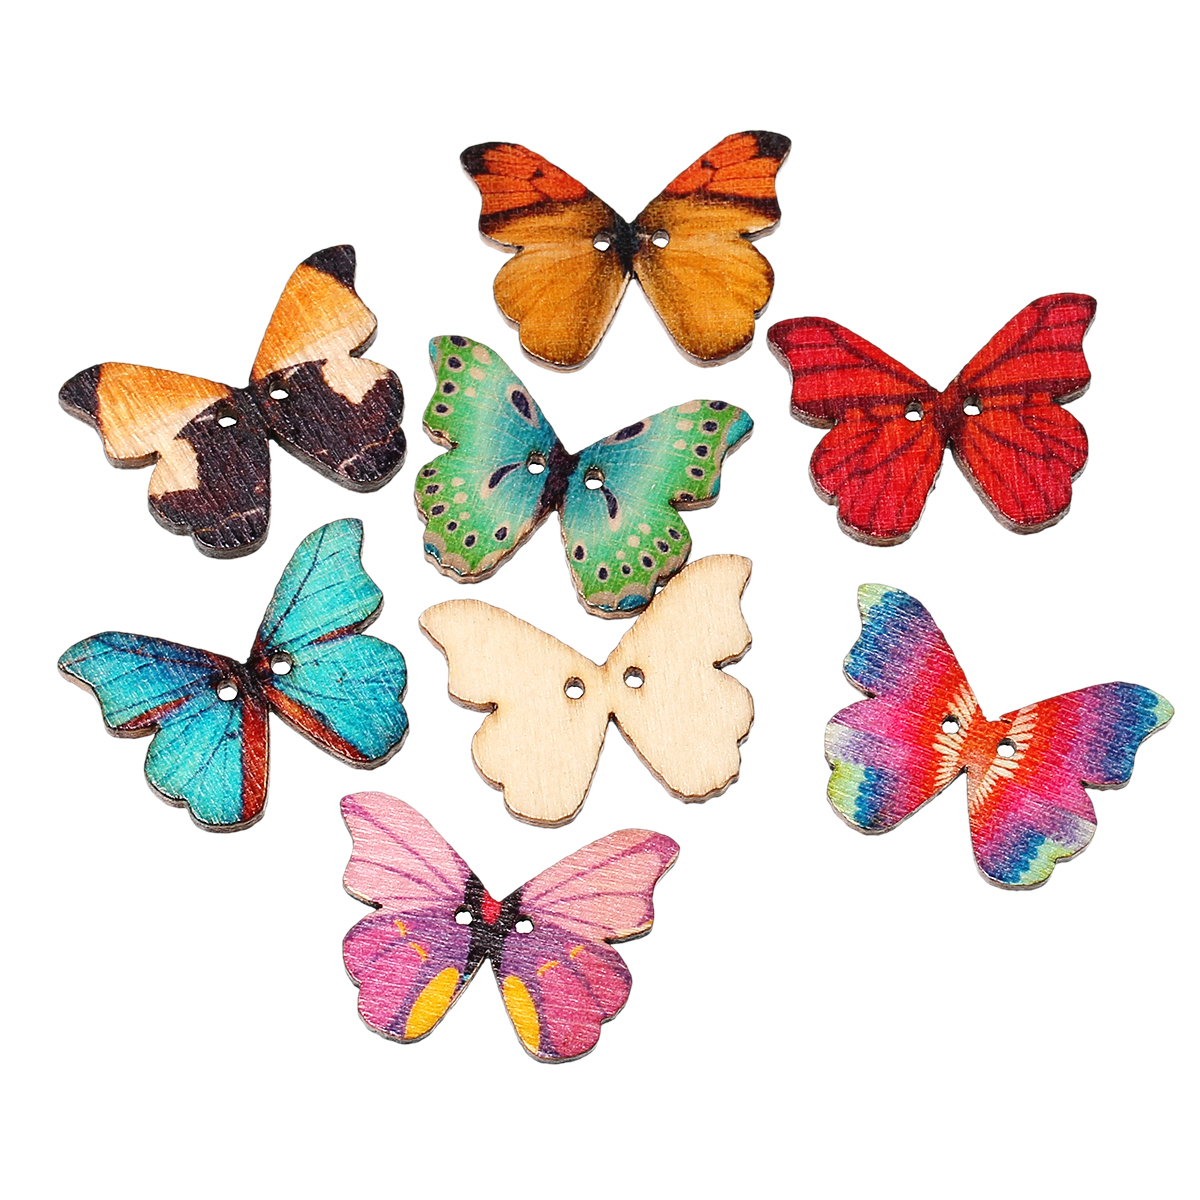 Wood Sewing Scrapbooking Button Butterfly At Random Two Holes 28mm X 21mm,7 PCs 2015 New